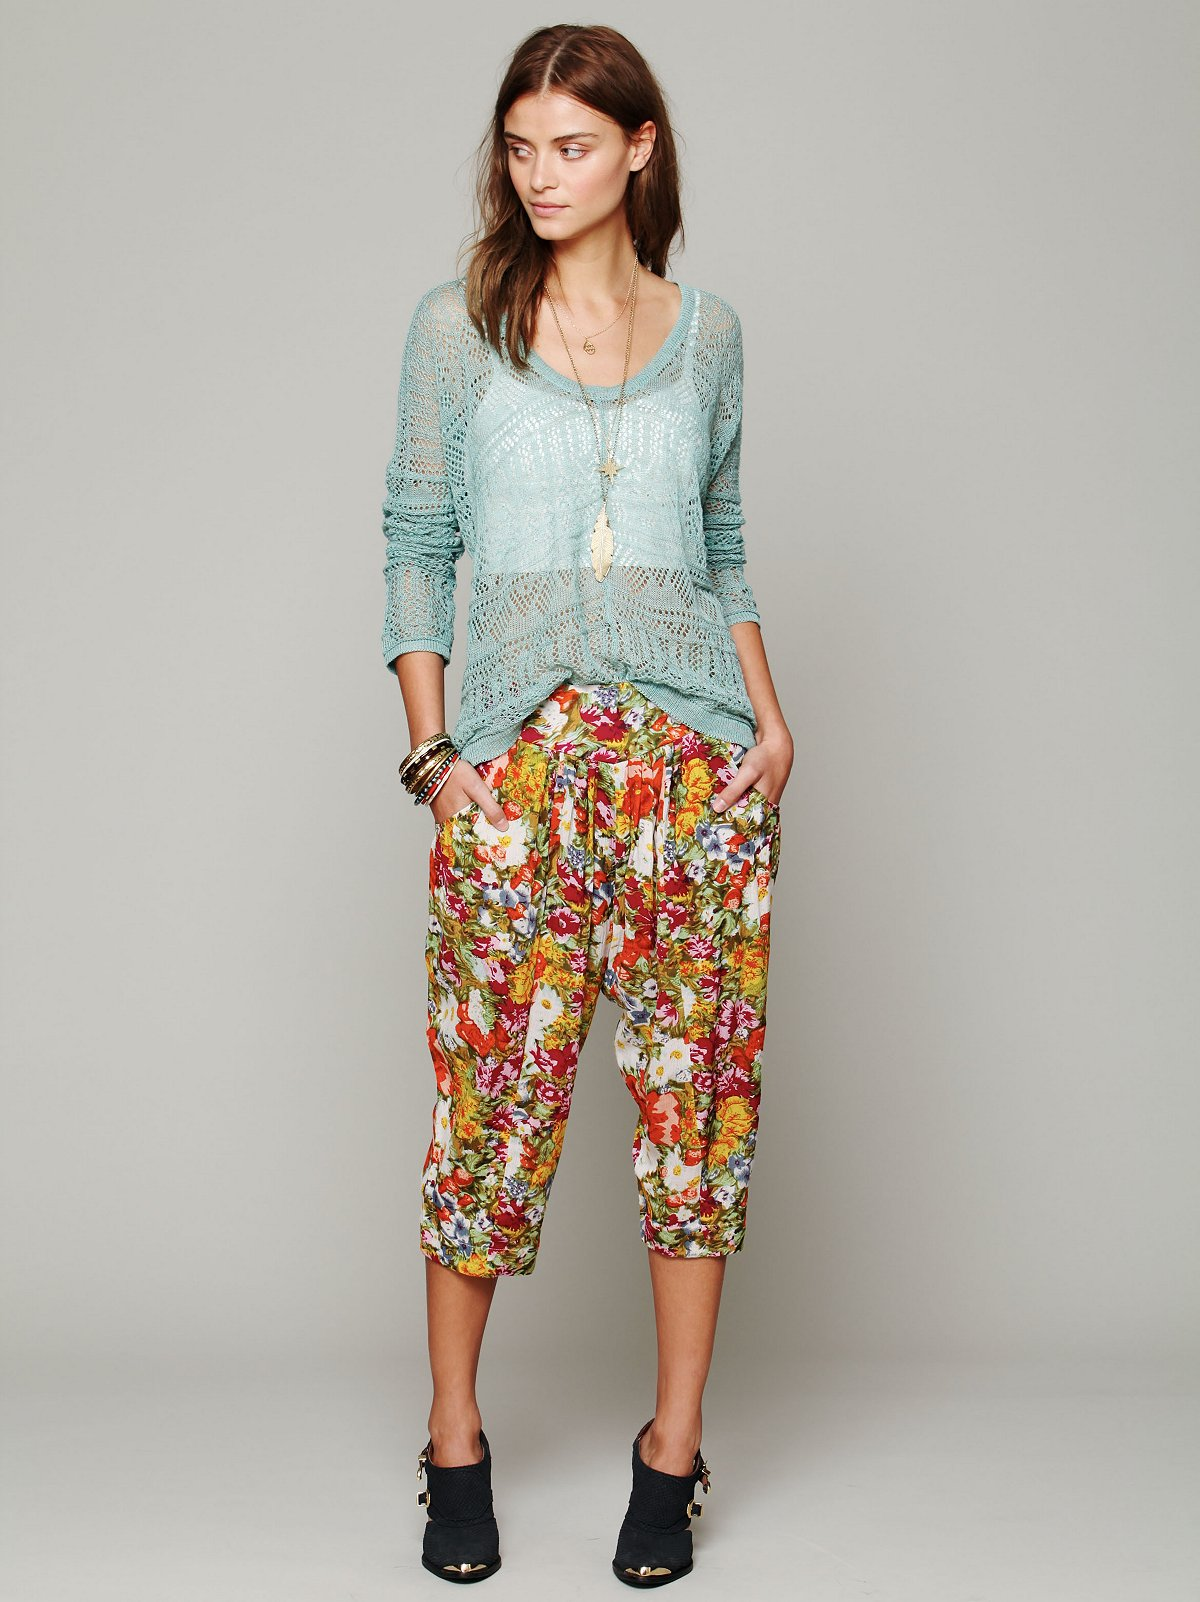 FP ONE Floral Paradise Pant